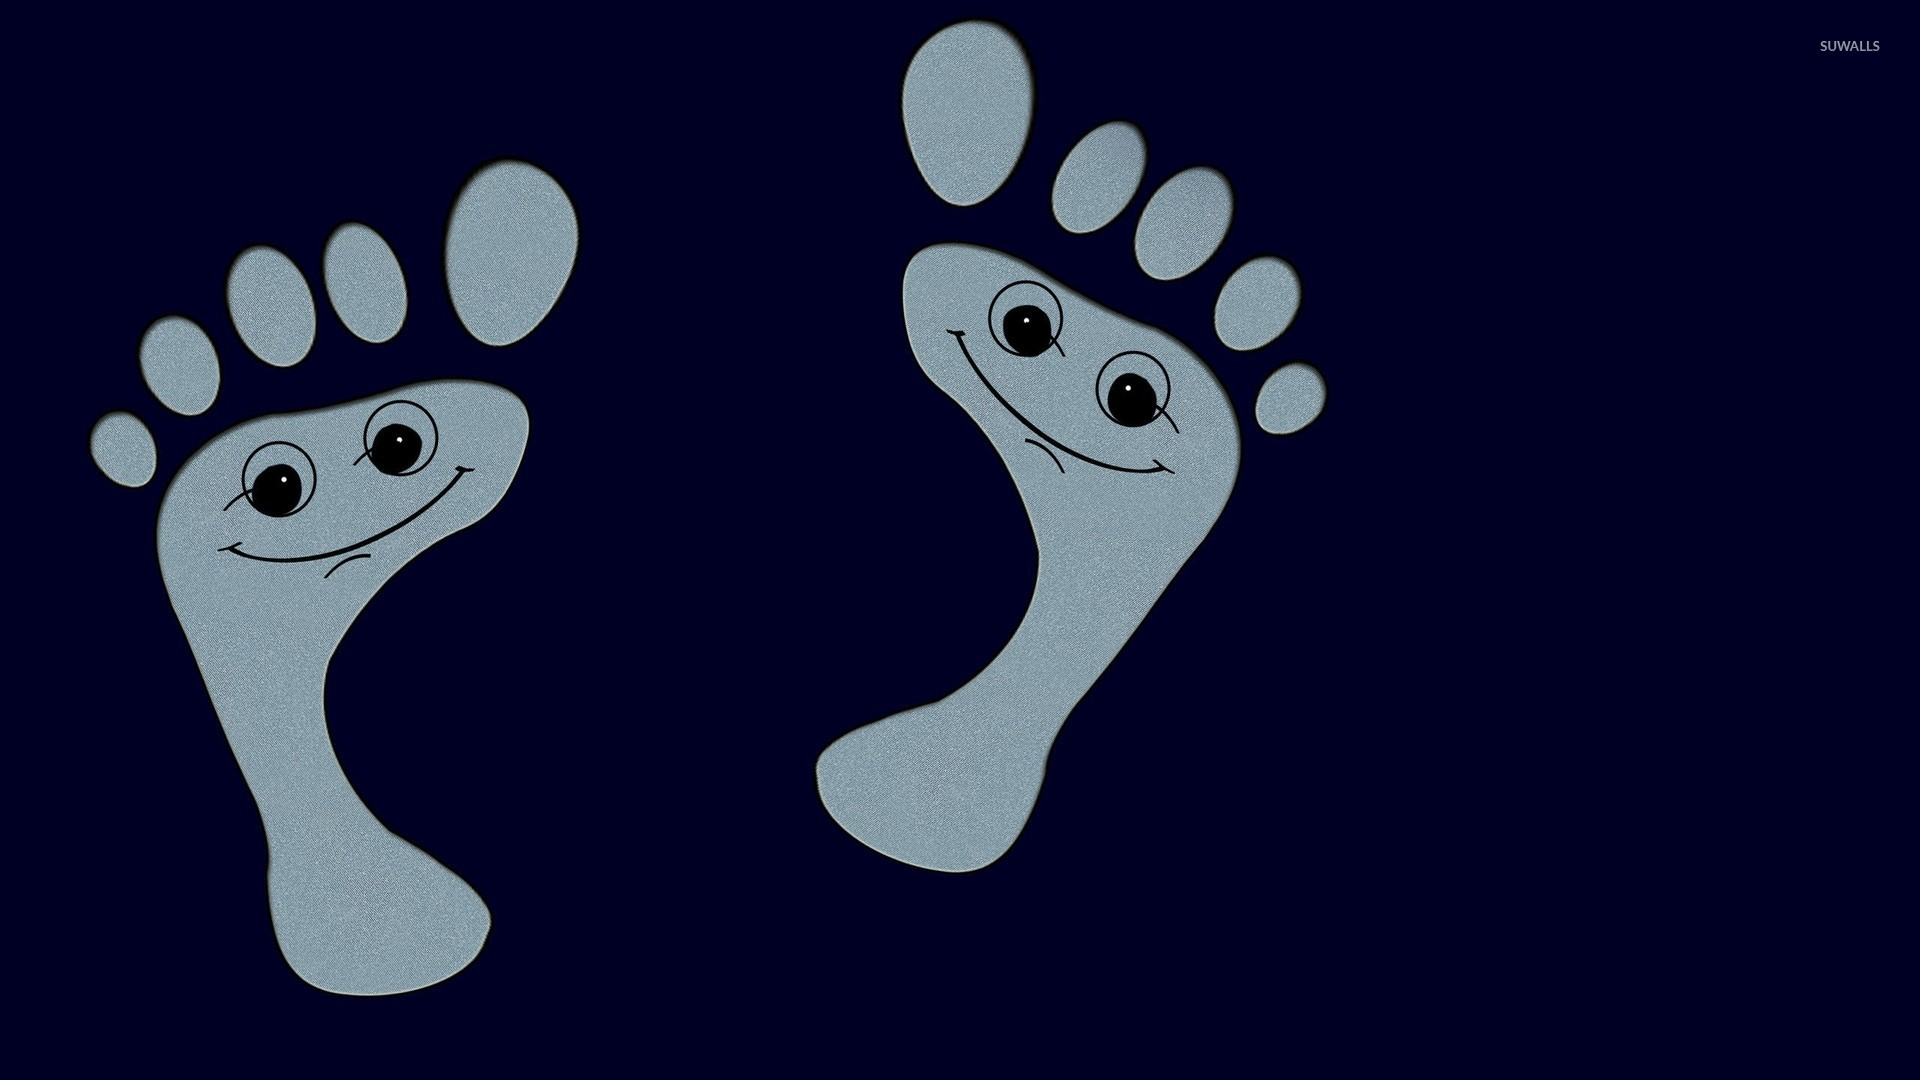 Funny footprints wallpaper   Funny wallpapers   22995 1920x1080